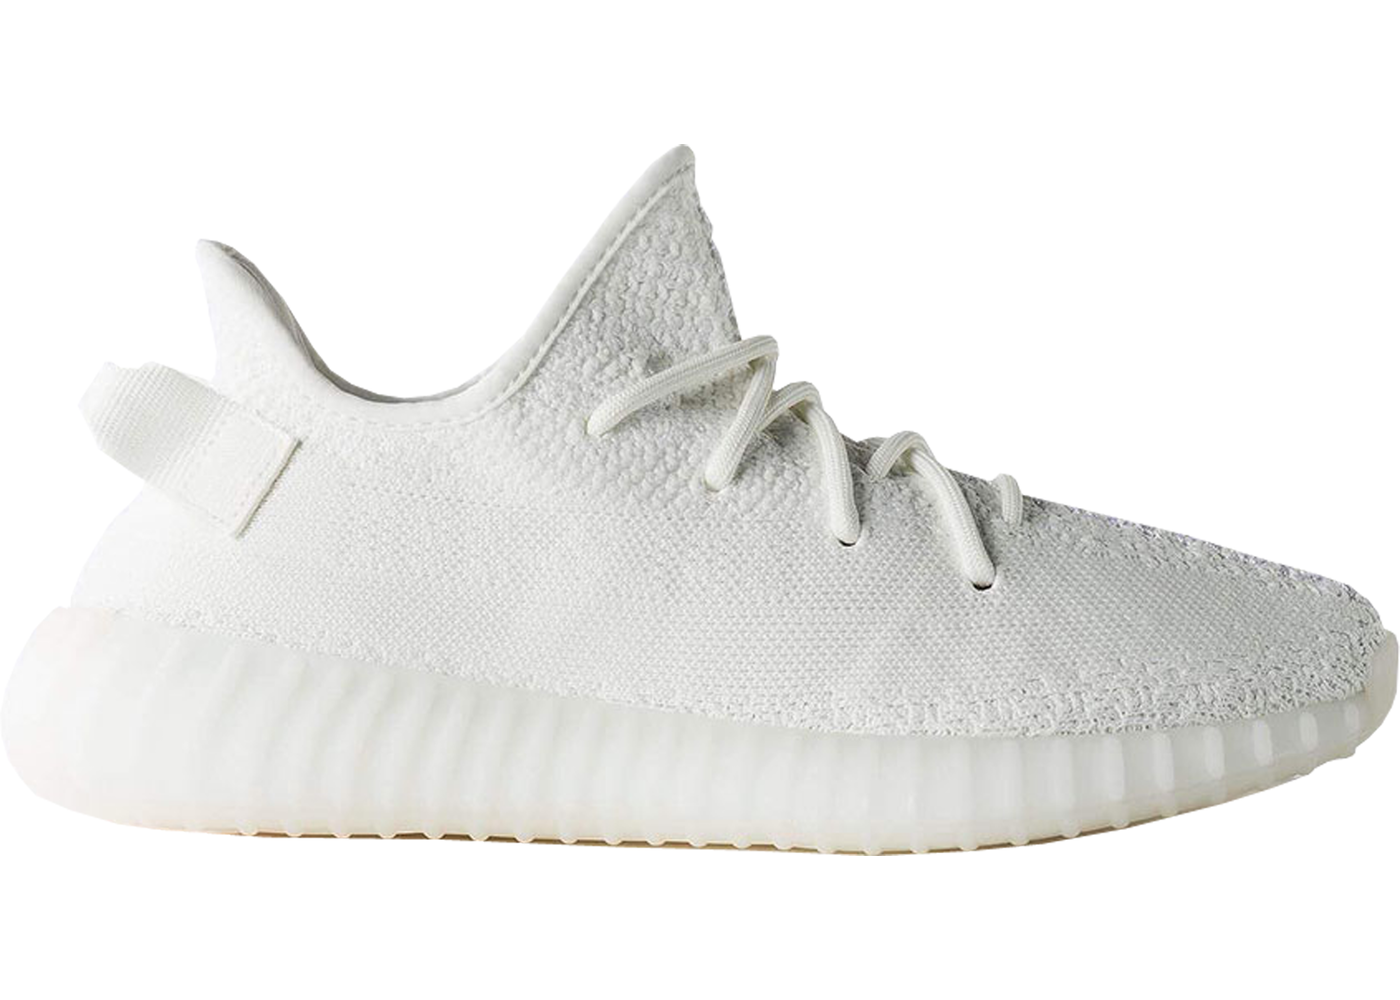 CLOSER LOOK: adidas Yeezy 350 Boost 'Oxford Tan'